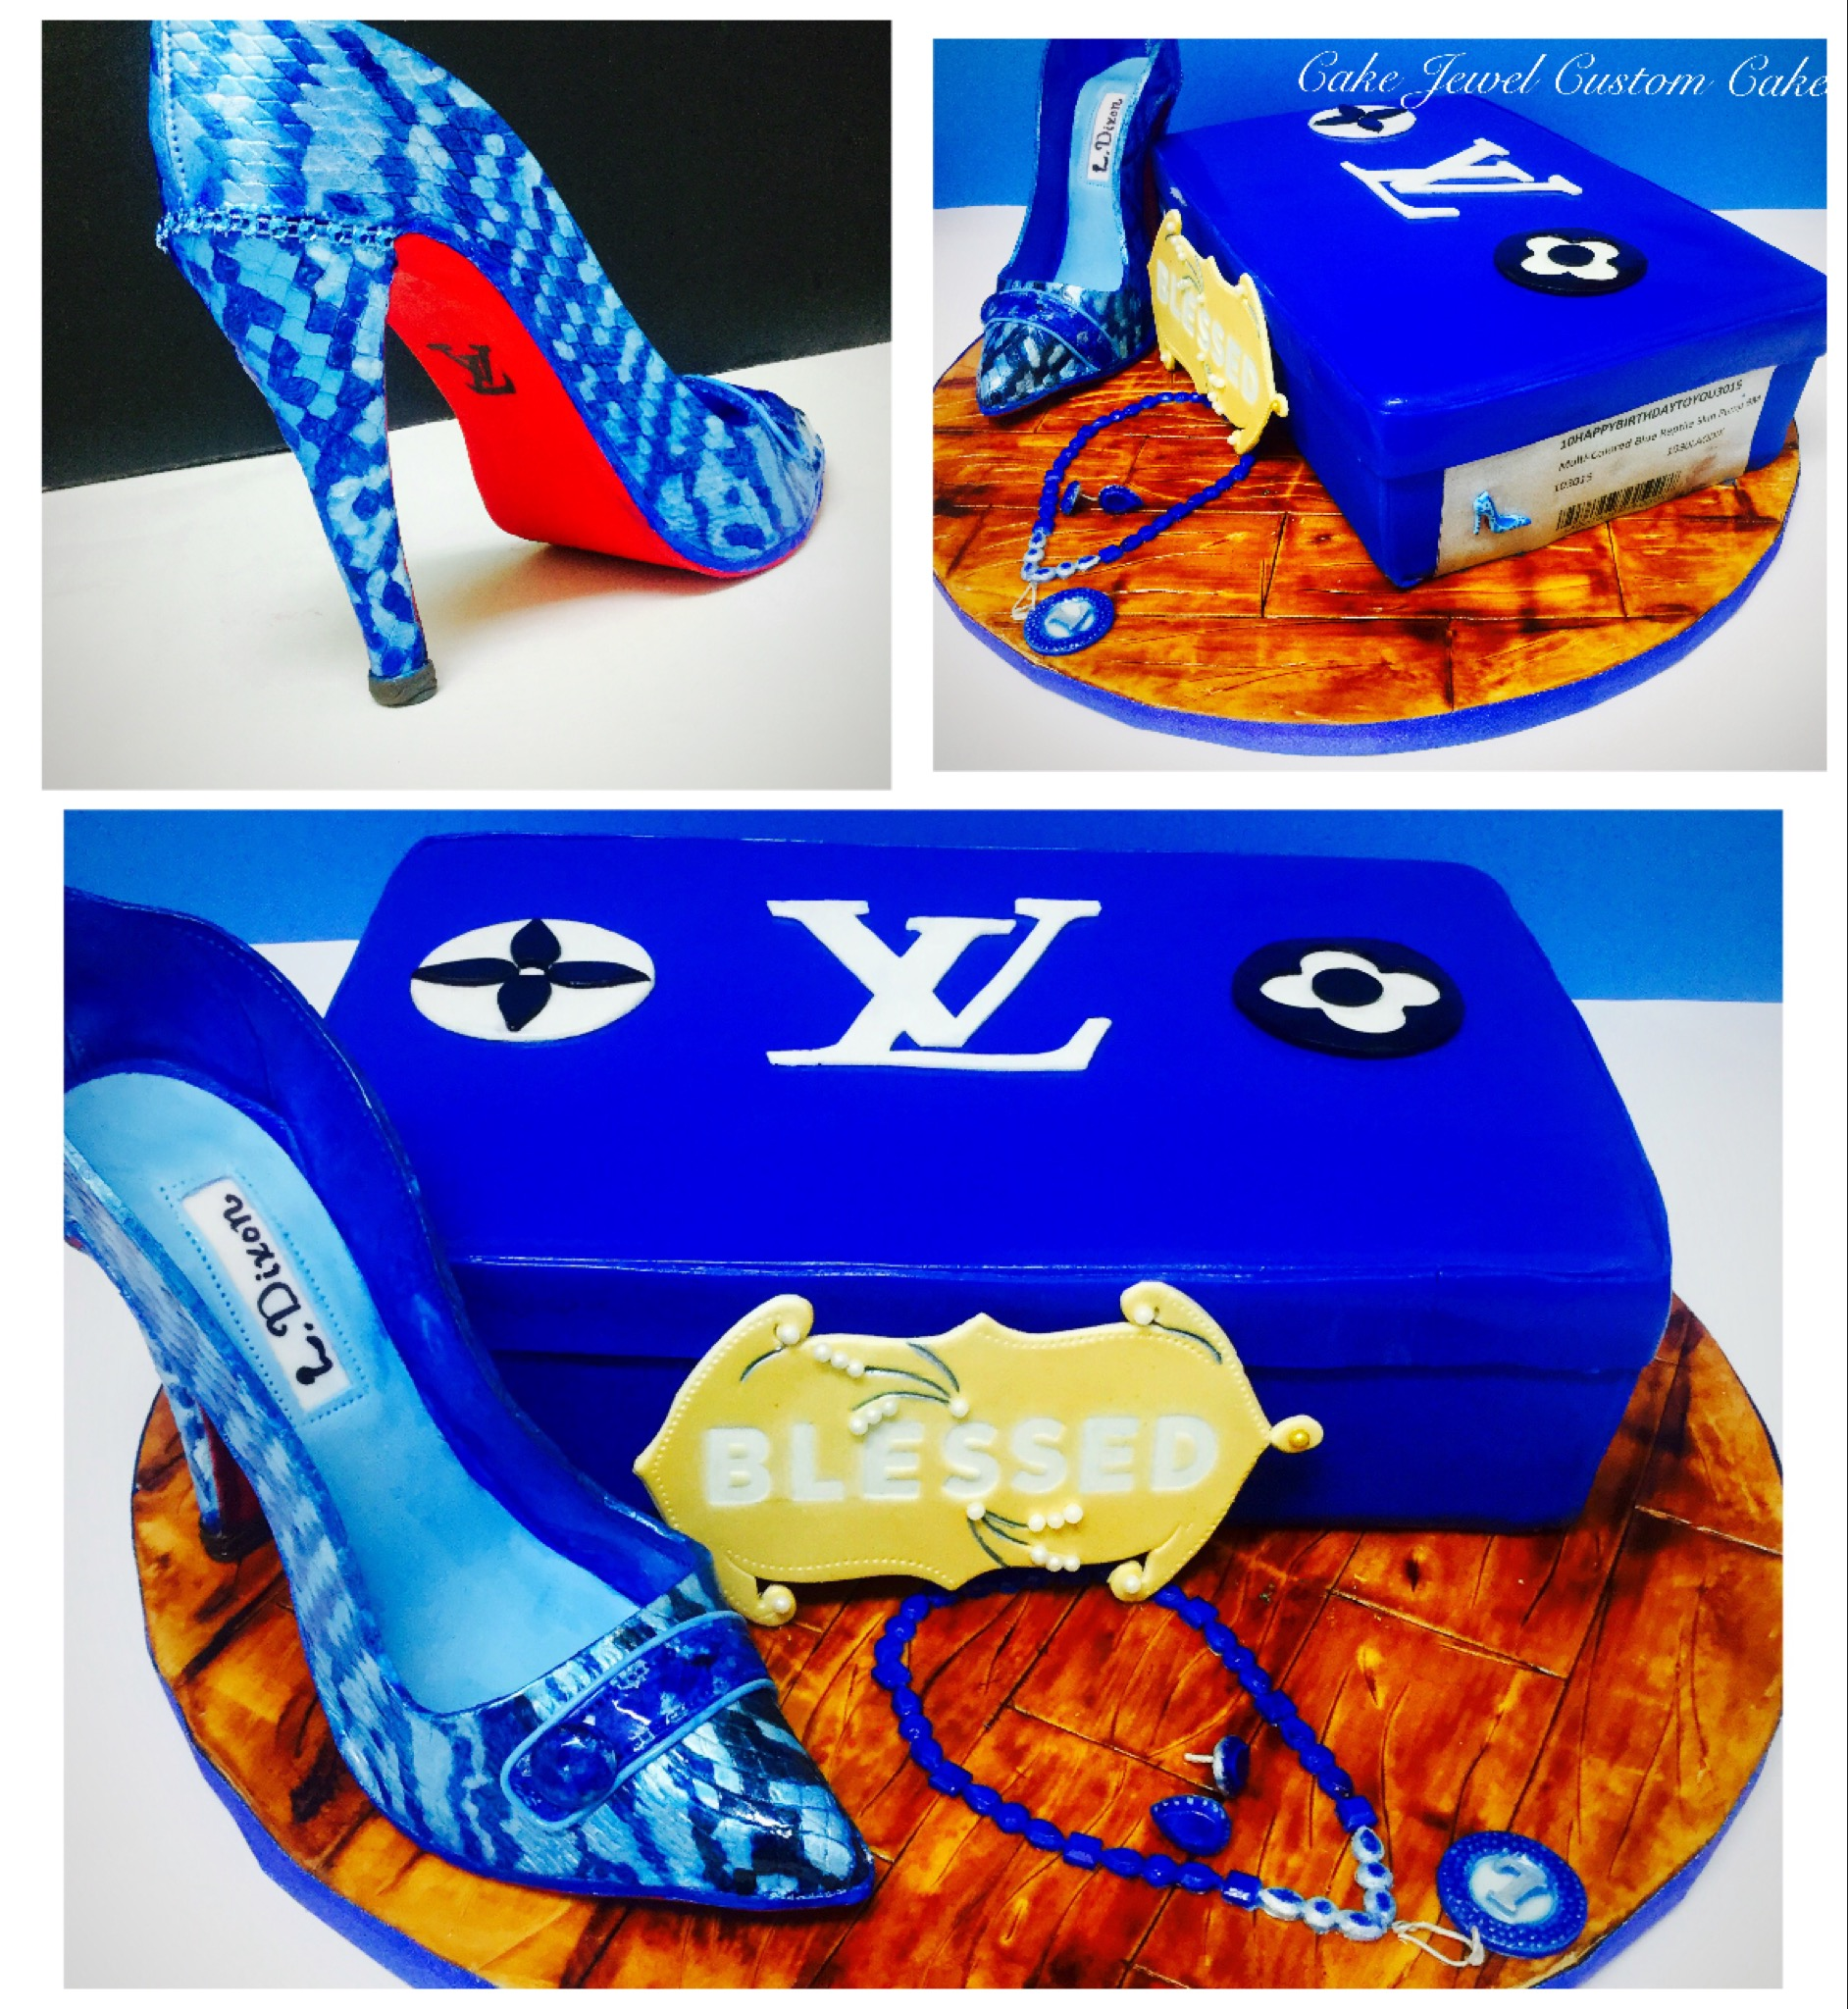 Designer Shoe box Cake and Sugar High Heel